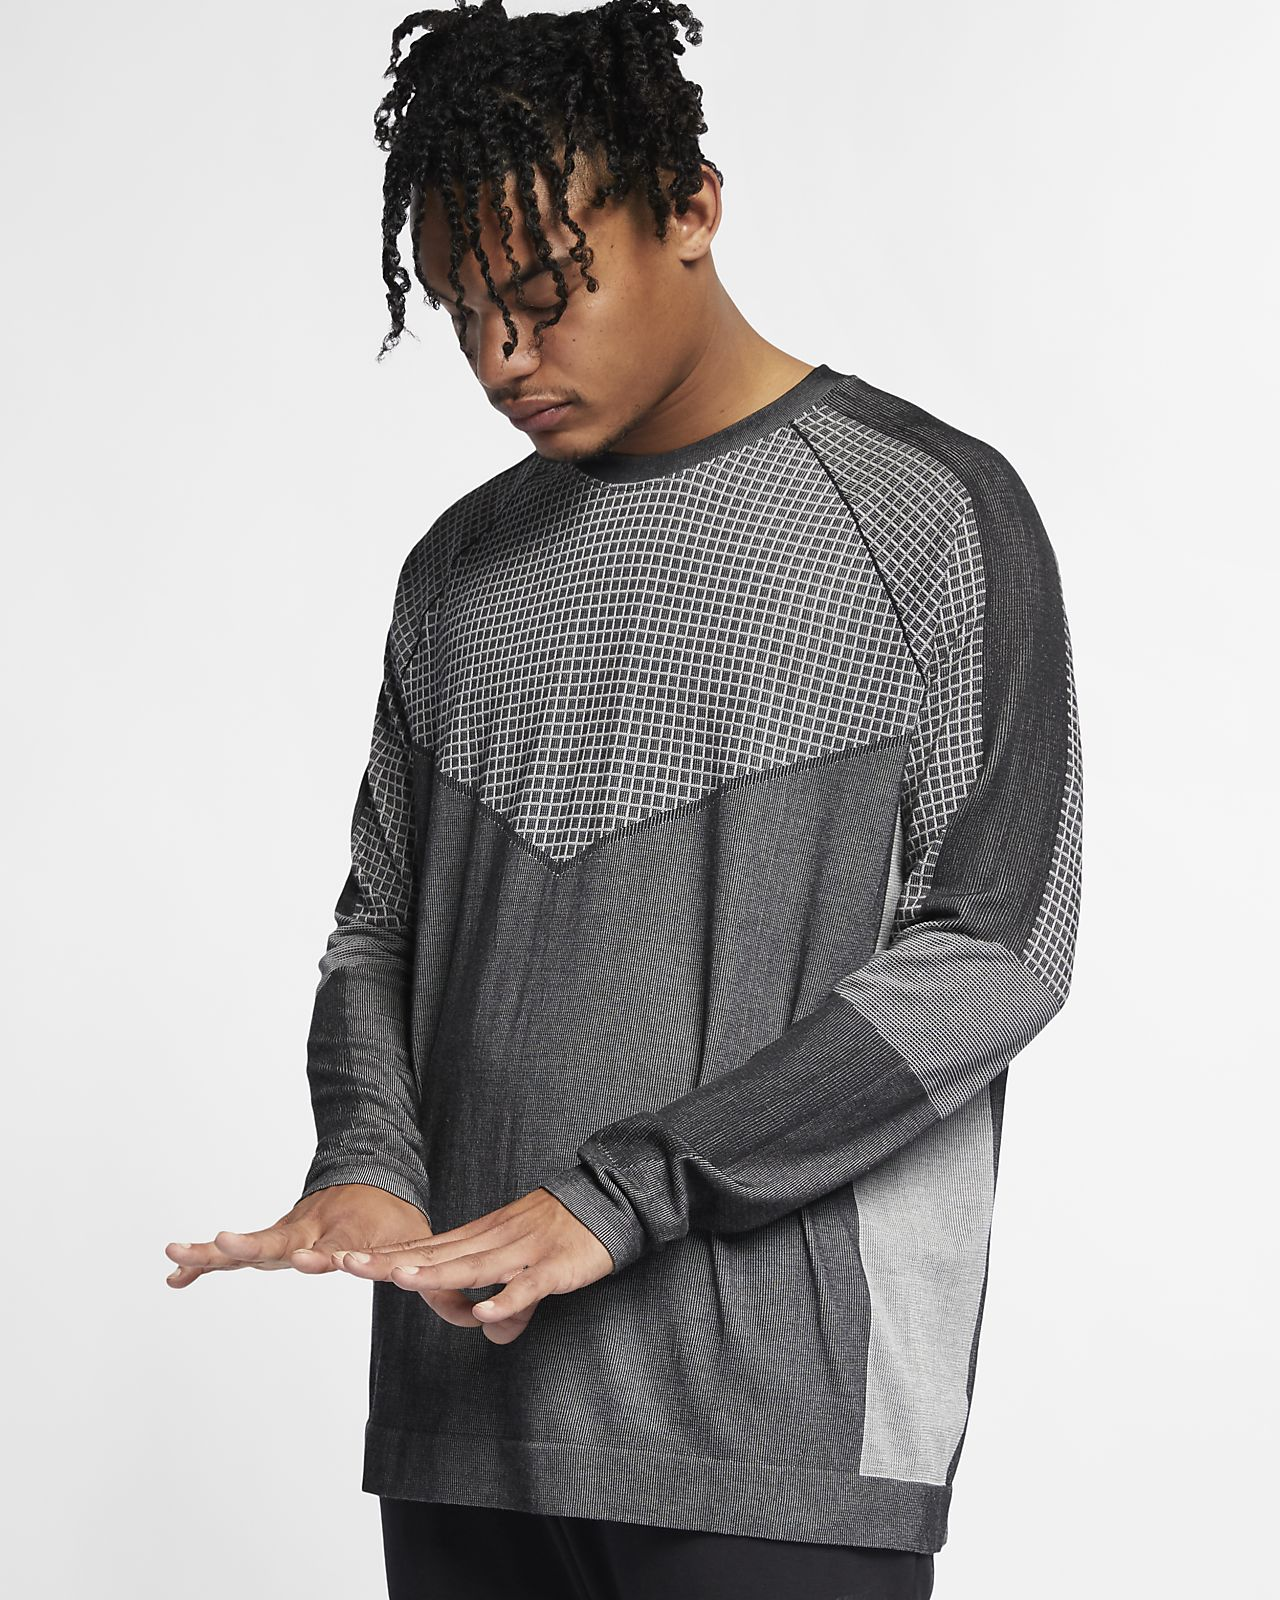 Nike Sportswear Tech Pack Men's Long-Sleeve Knit Top